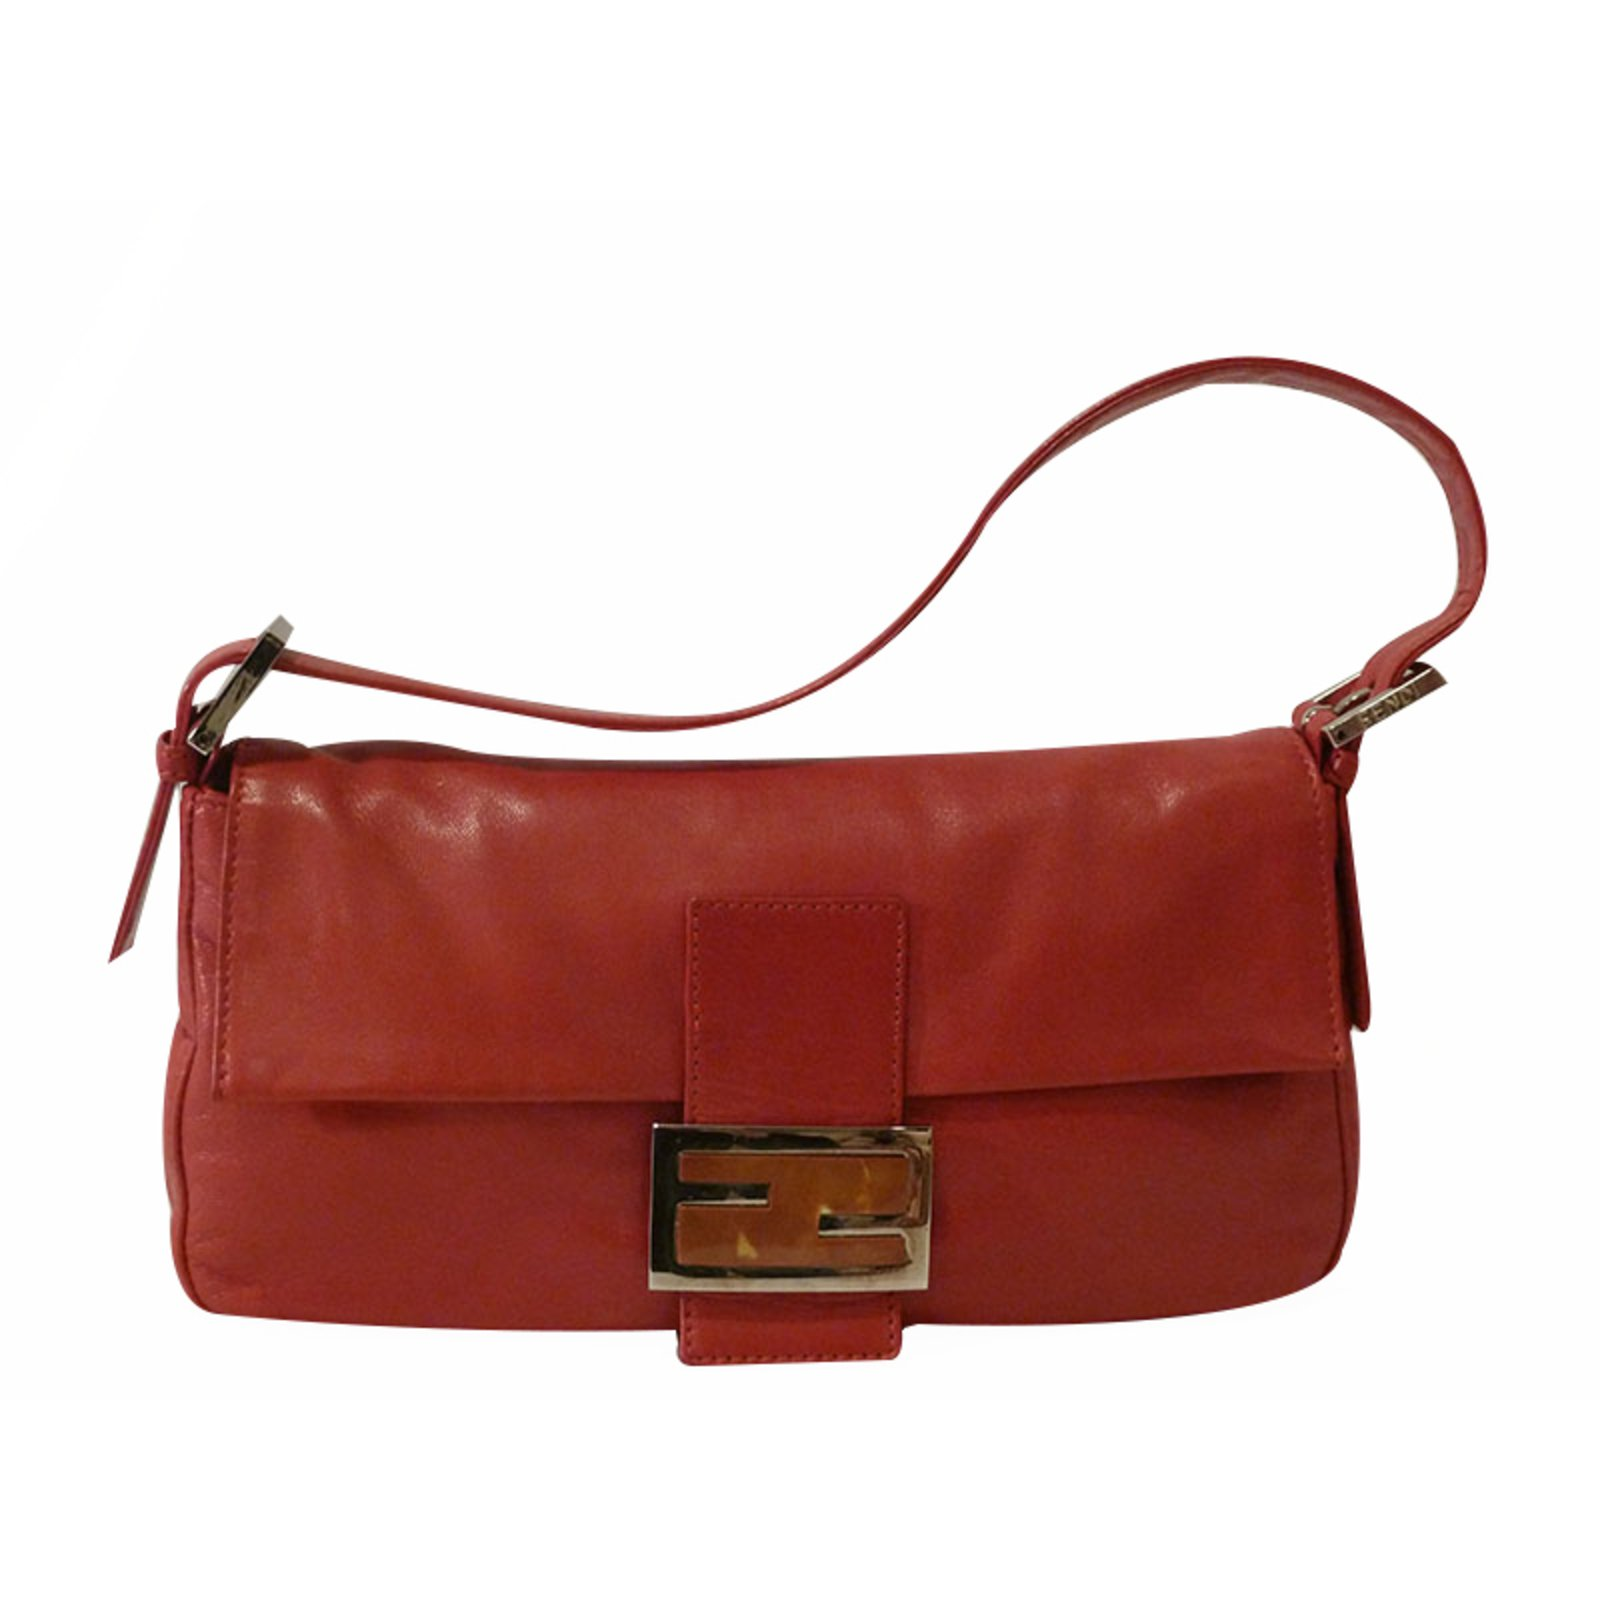 7a18a106f4 ... hot fendi baguette shoulder bag handbags leather red ref.21609 7045c  f7f67